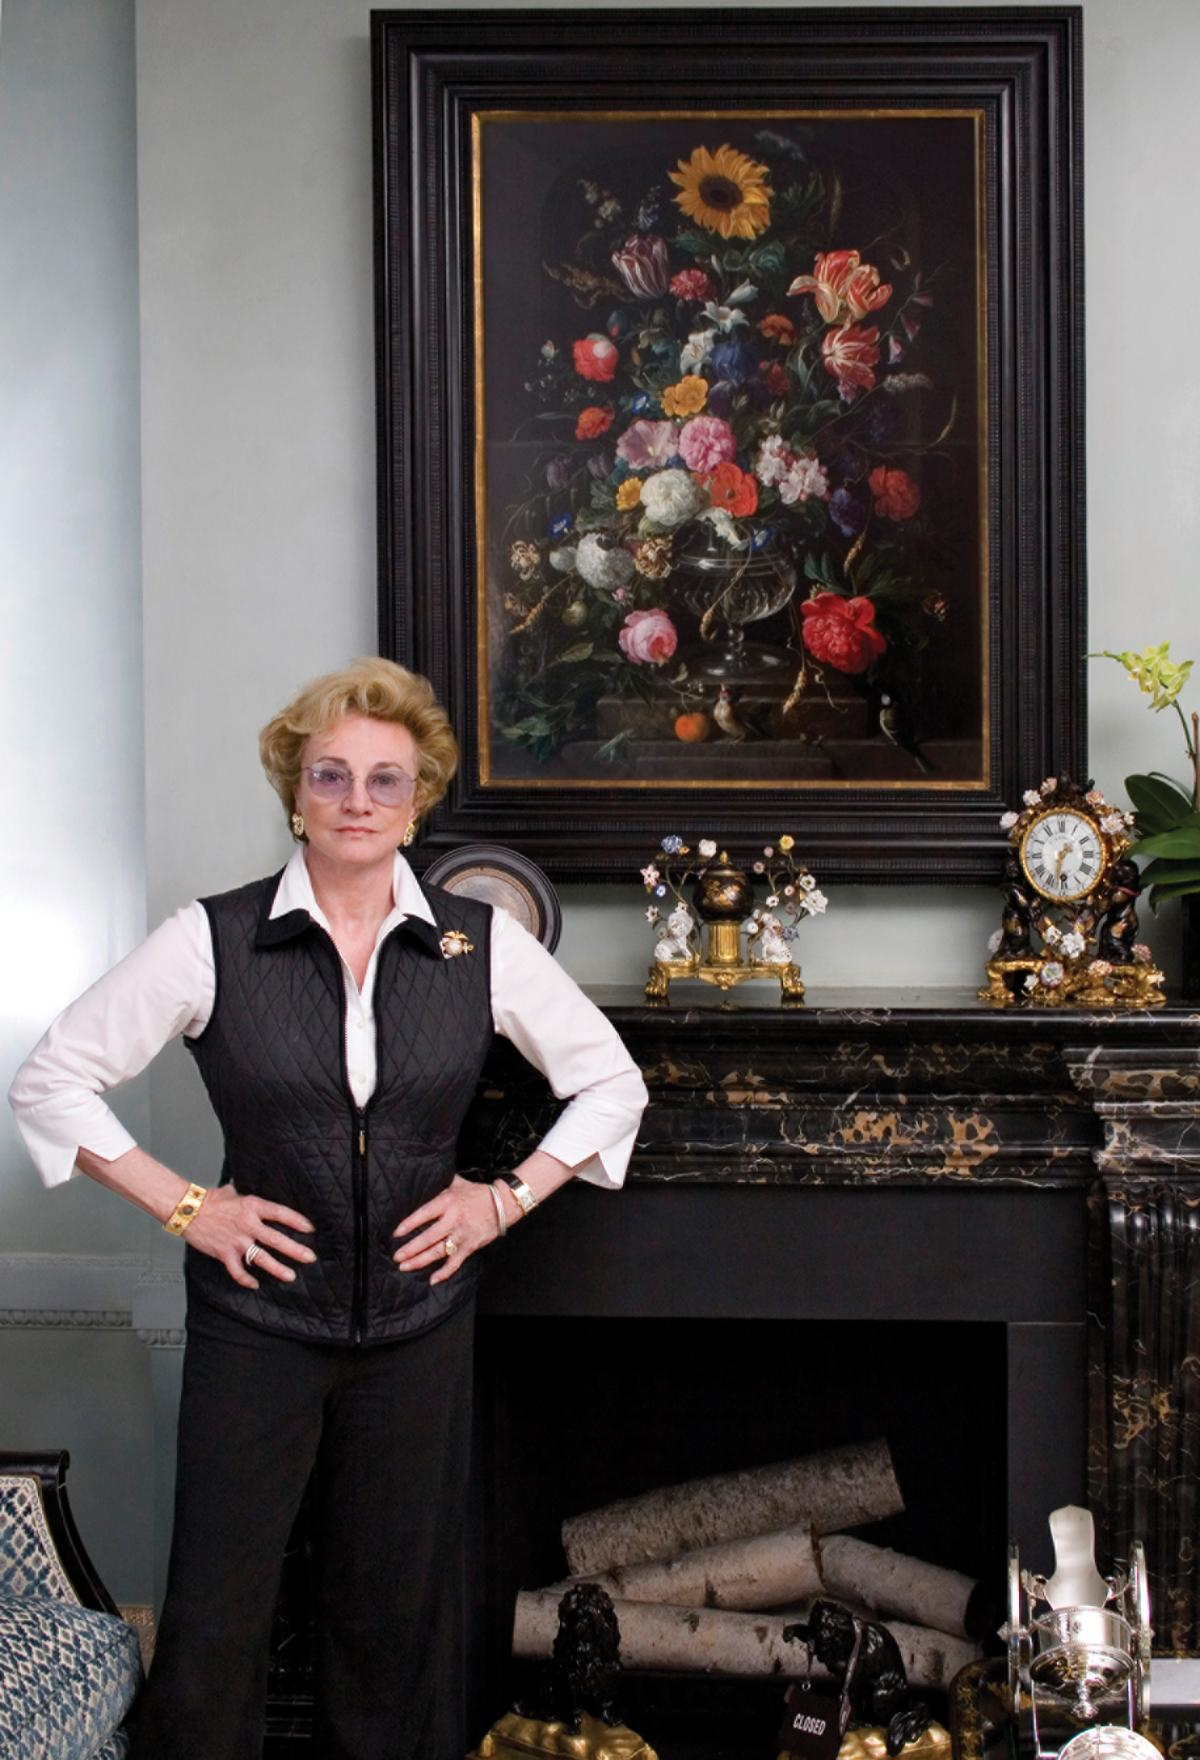 Photograph of a woman standing in front of a painting that hangs above a fireplace